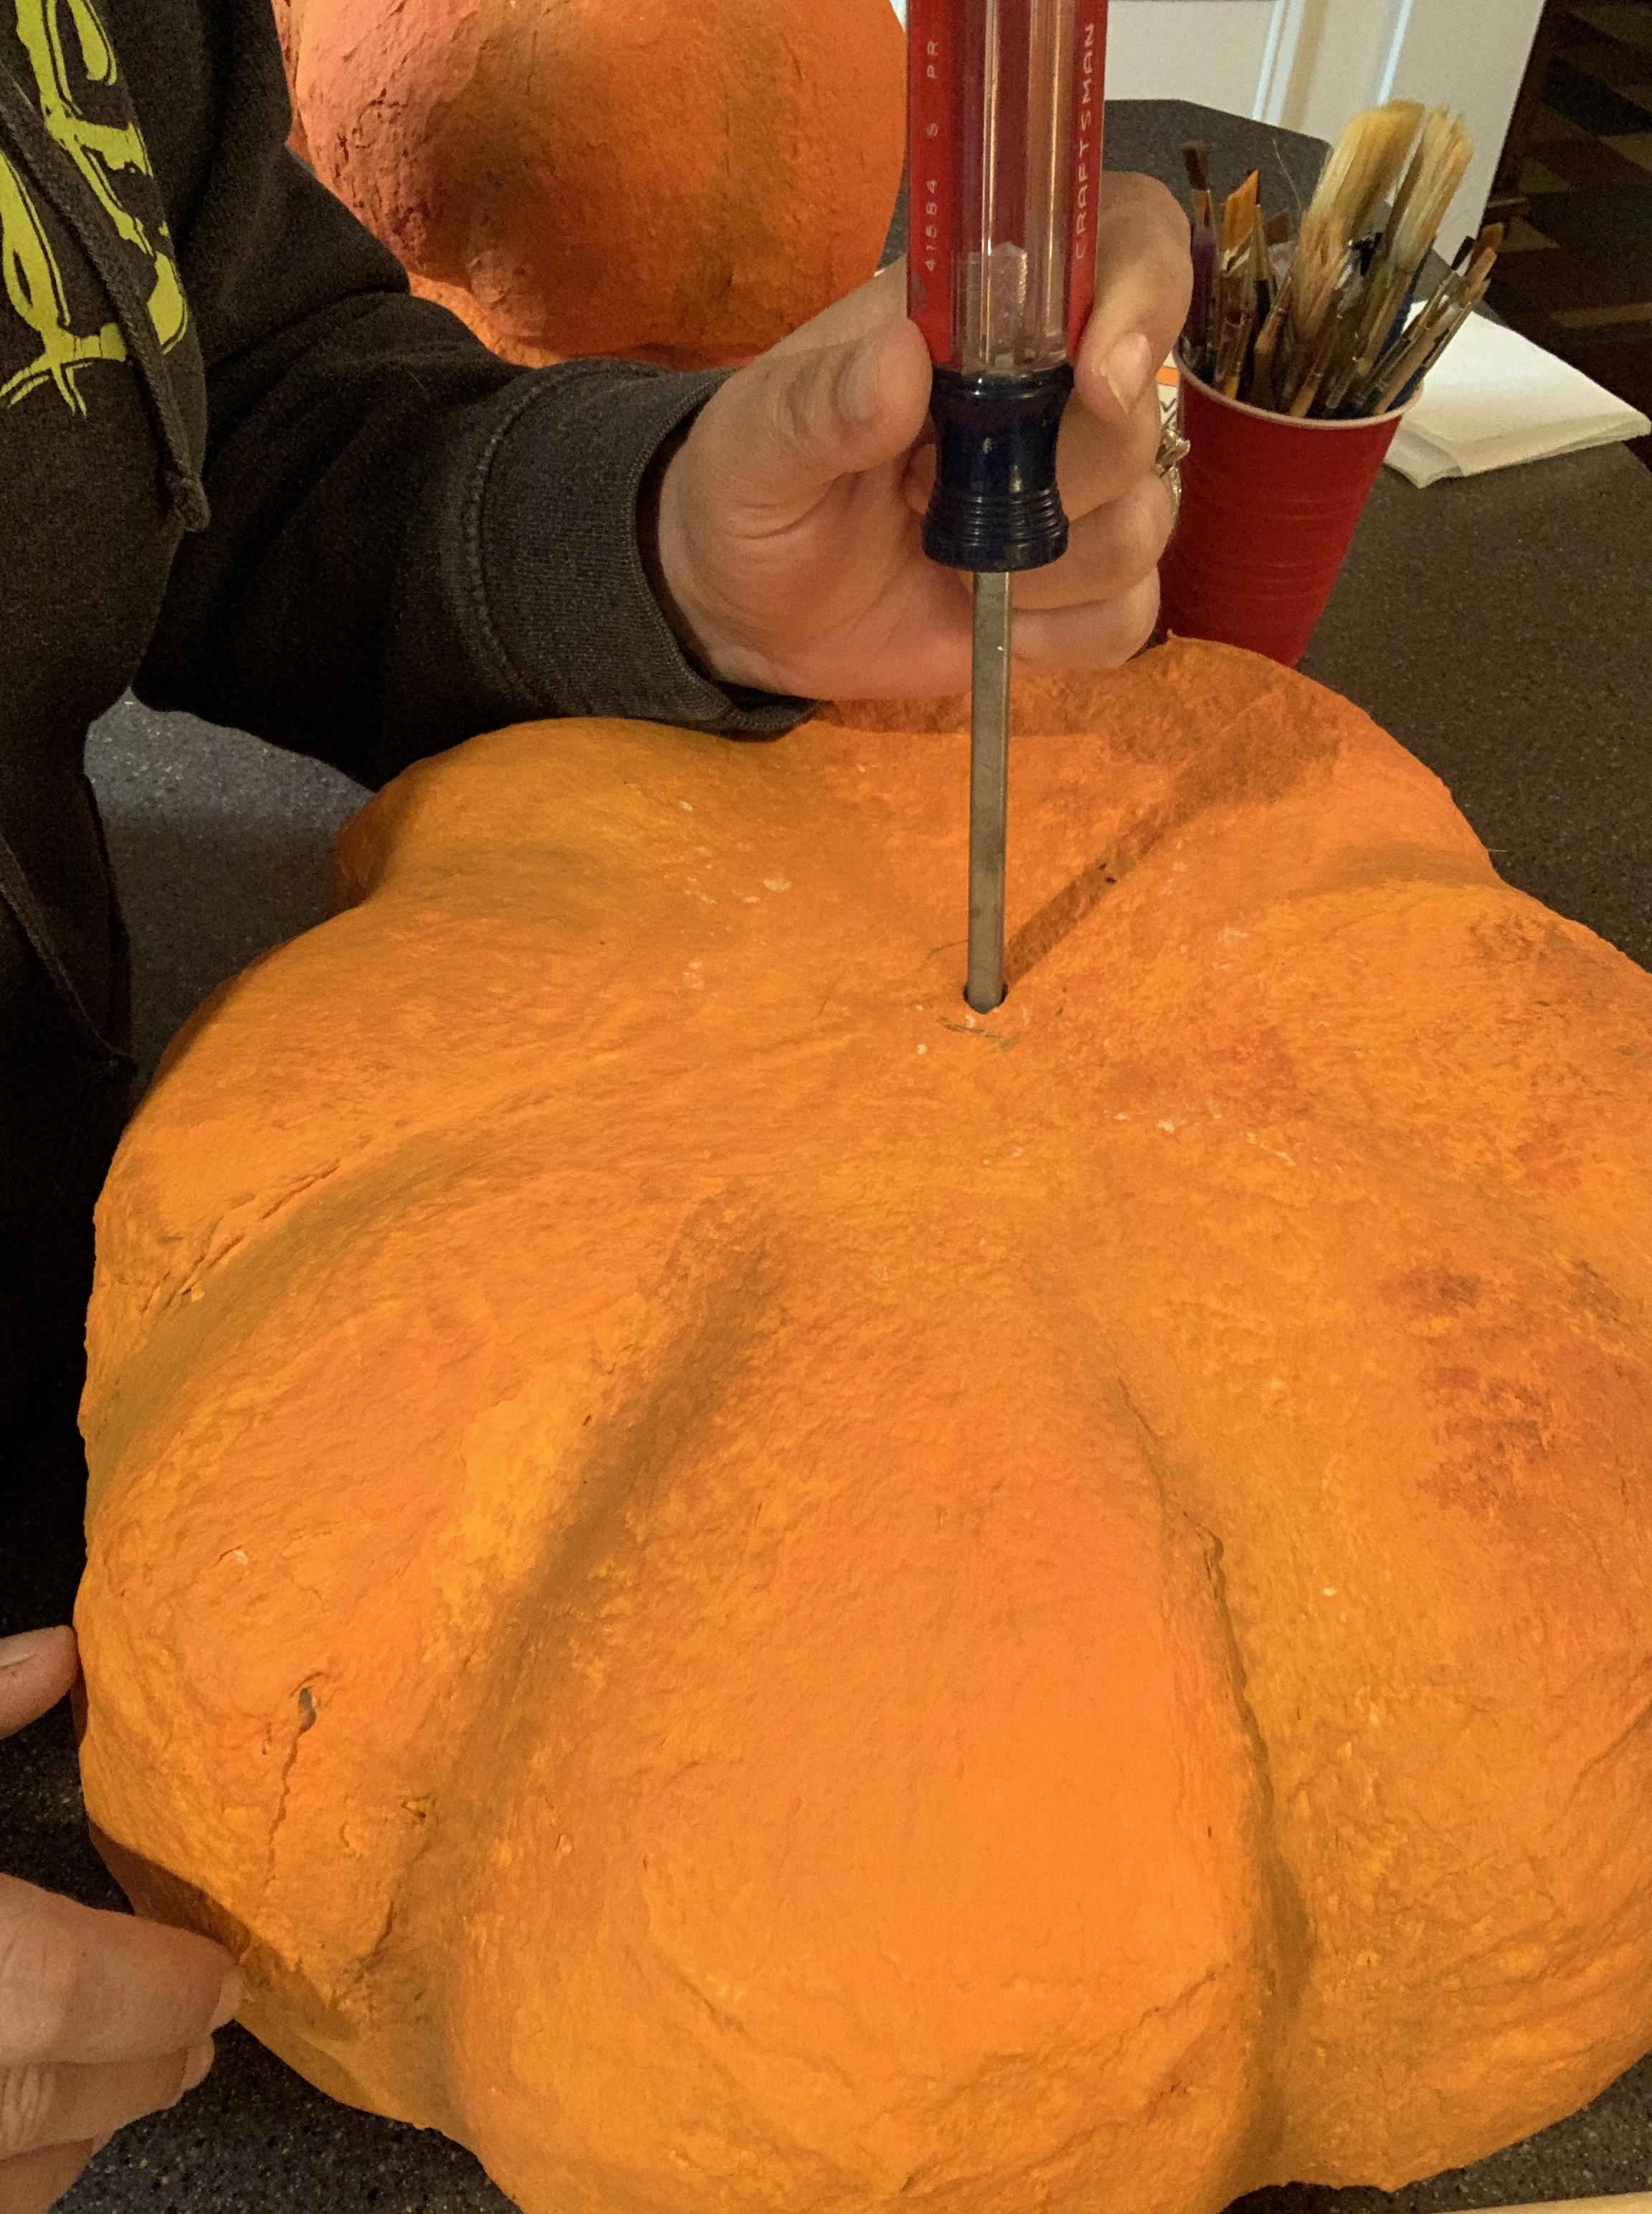 Using a screw driver to puncture holes in the clay pumpkins